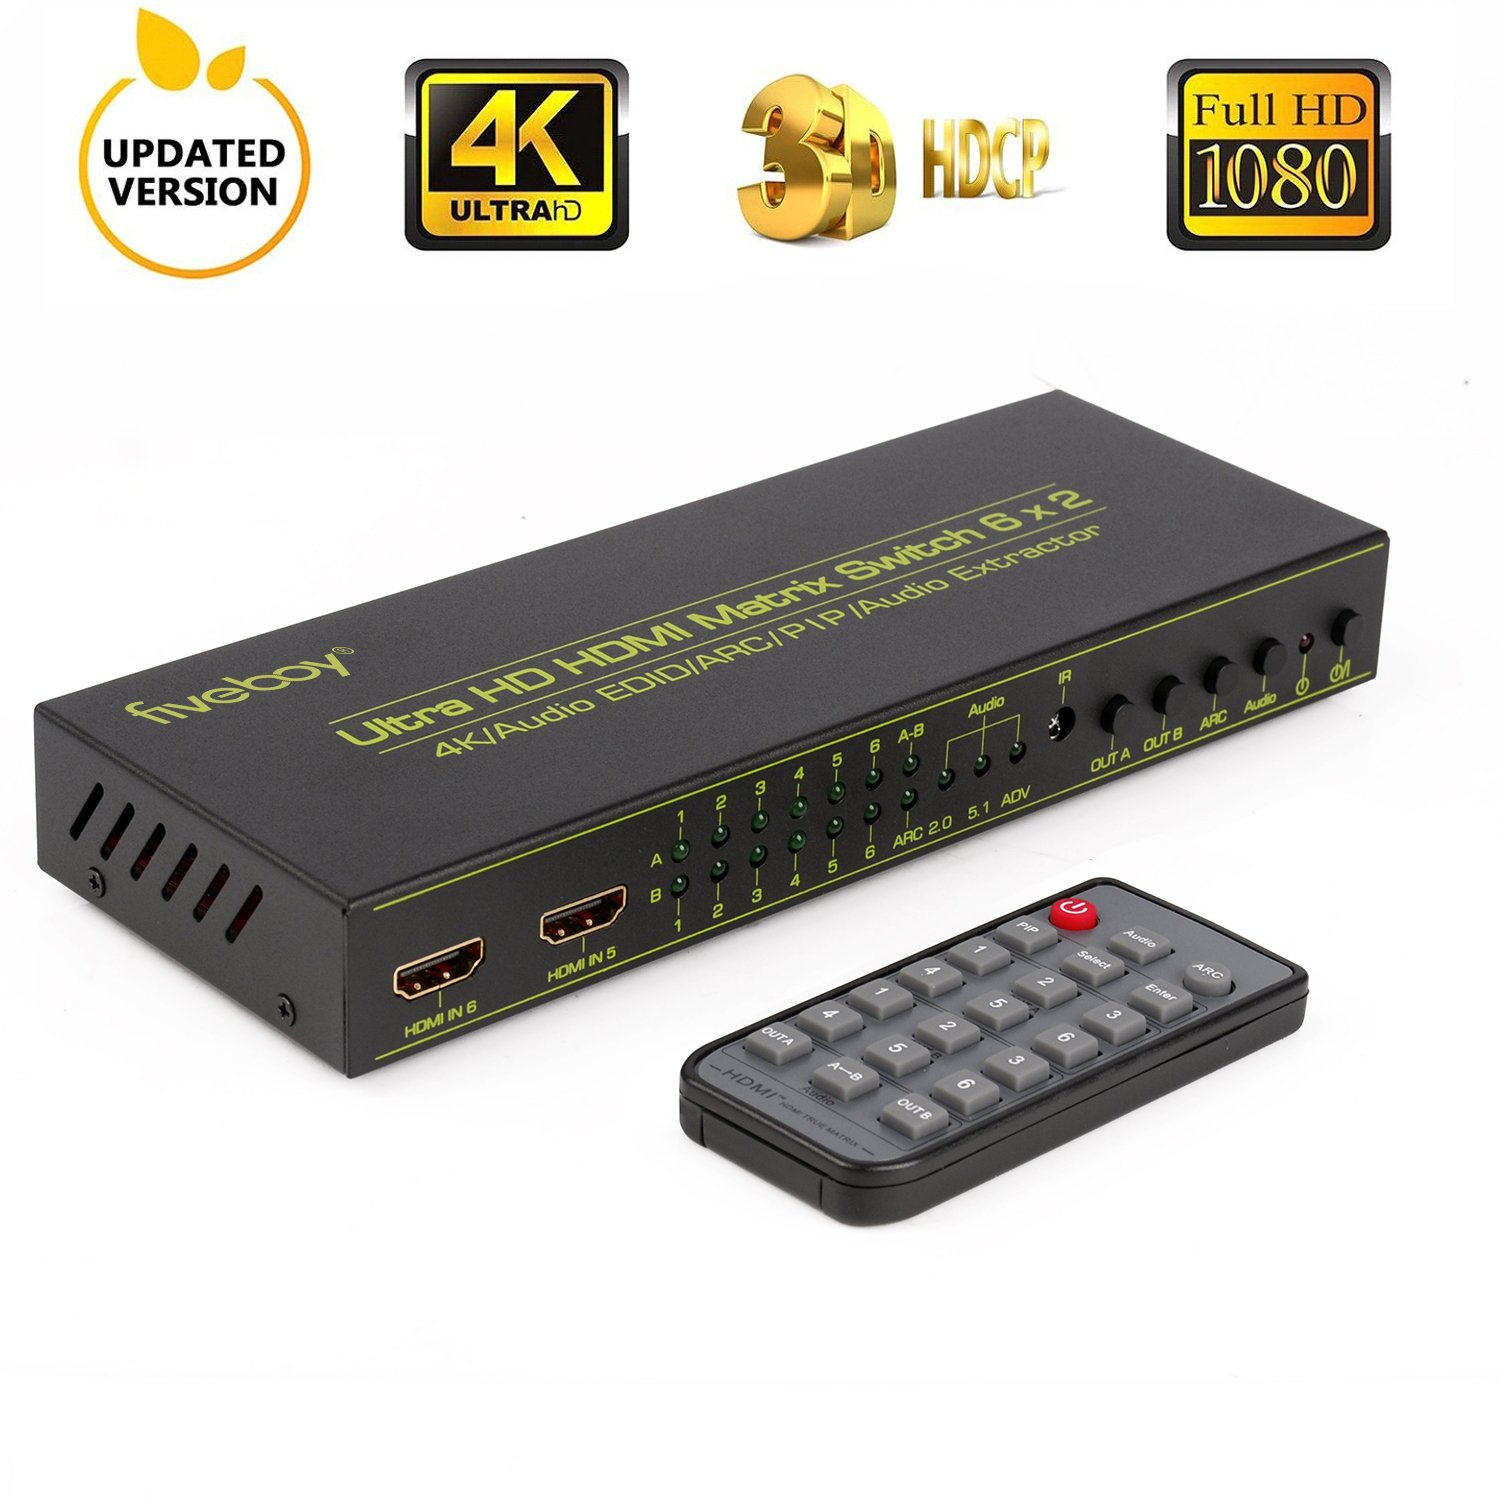 HDMI Matrix Switch (6-Input 2-Output), Fiveboy HDMI Audio Extractor with IR  Remote Control, Support PIP, ARC, 4Kx2K@30Hz, 3D for HD Displays, Home